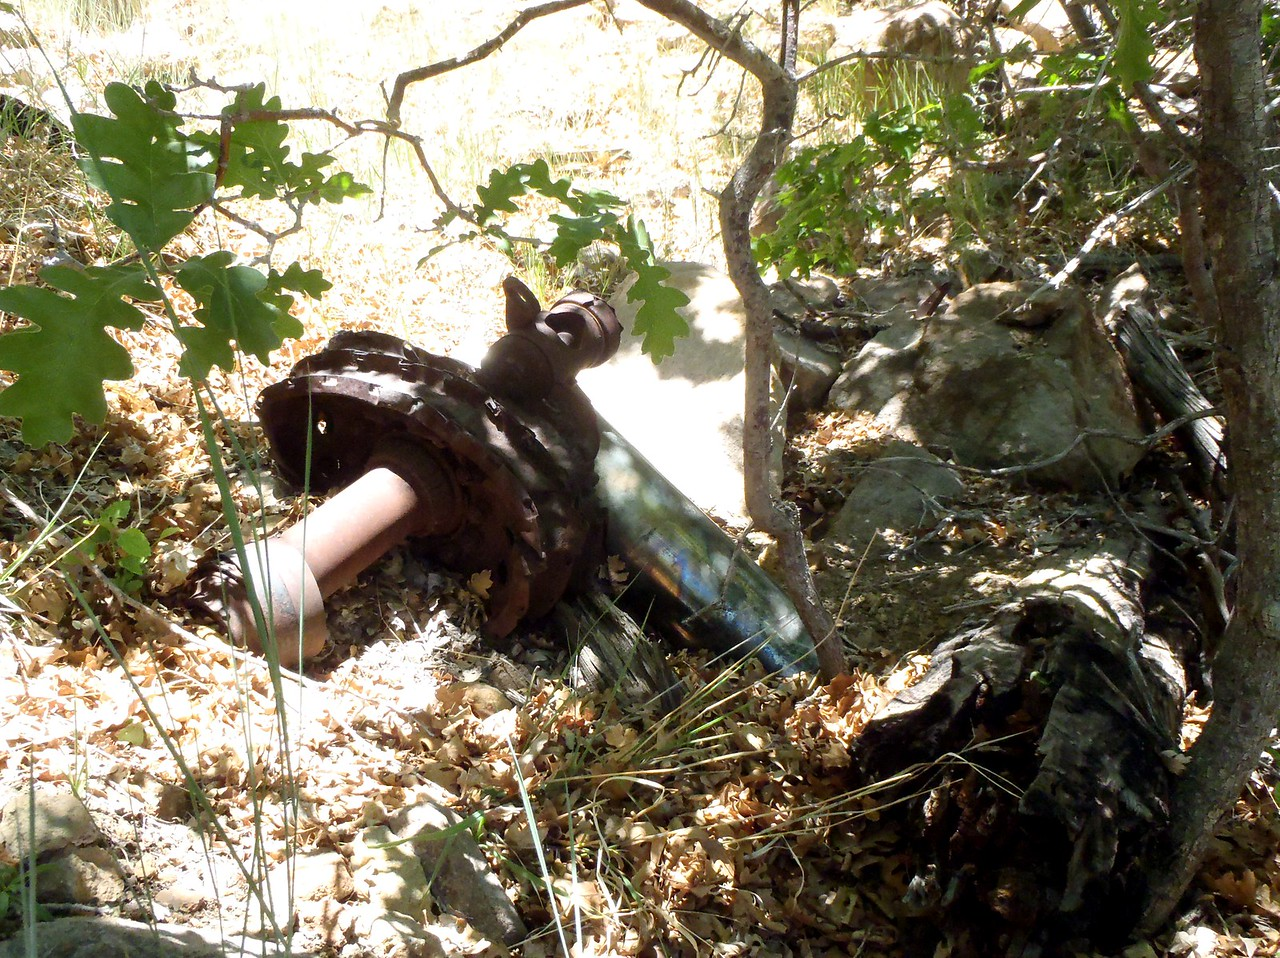 The other main landing gear was located partially buried in a ravine close by.